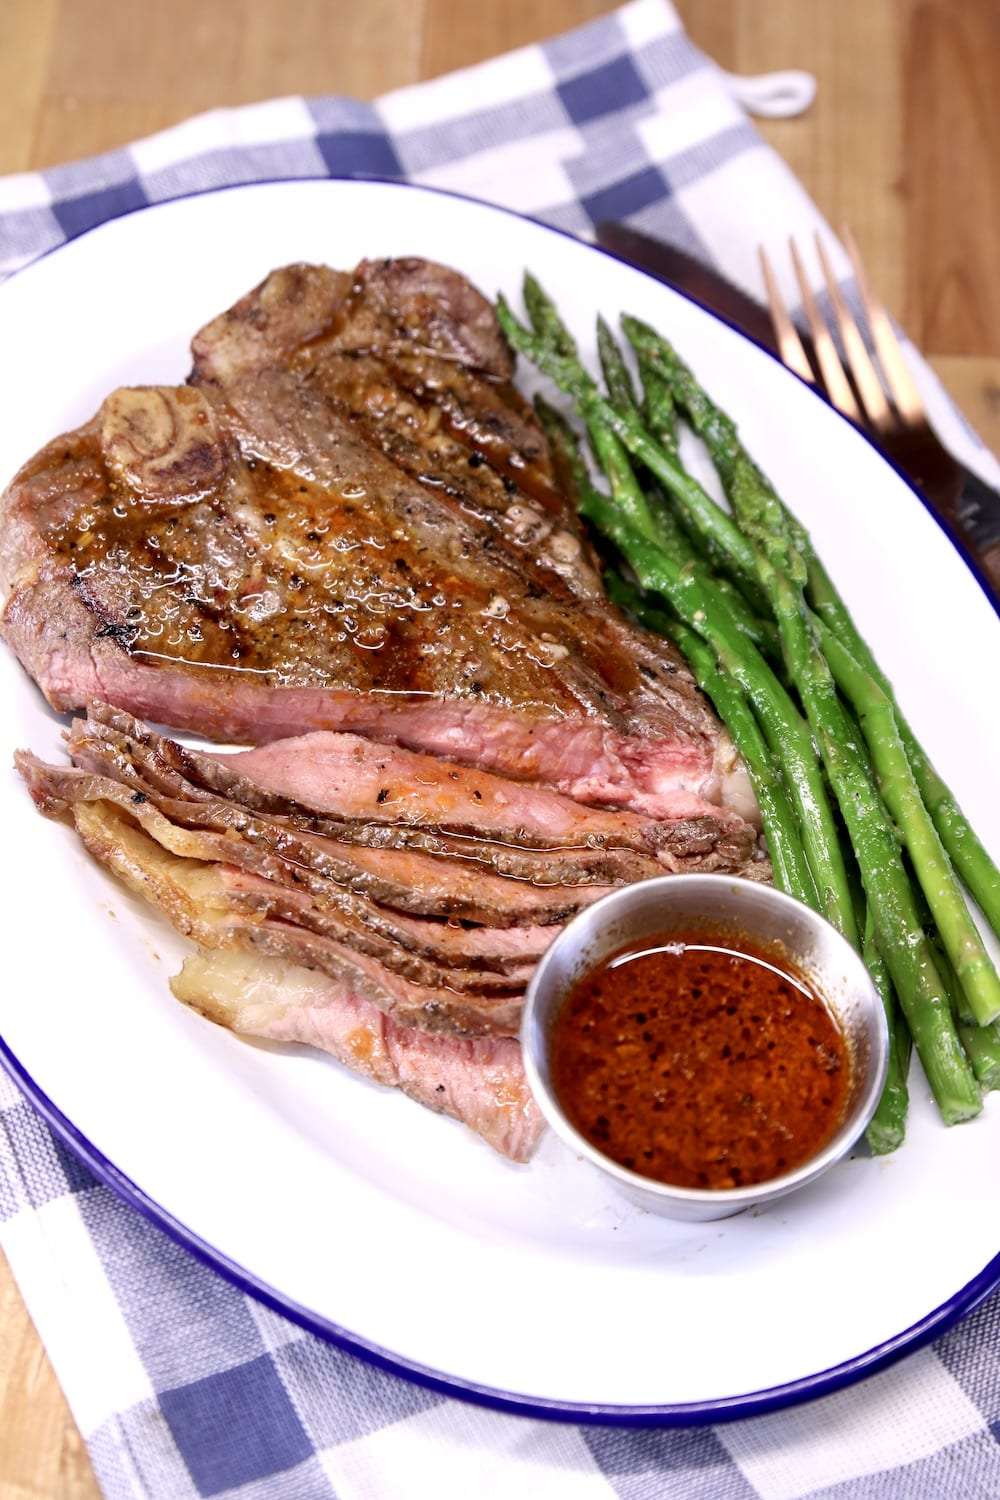 Grilled T-Bone Steak with homemade sauce and asparagus